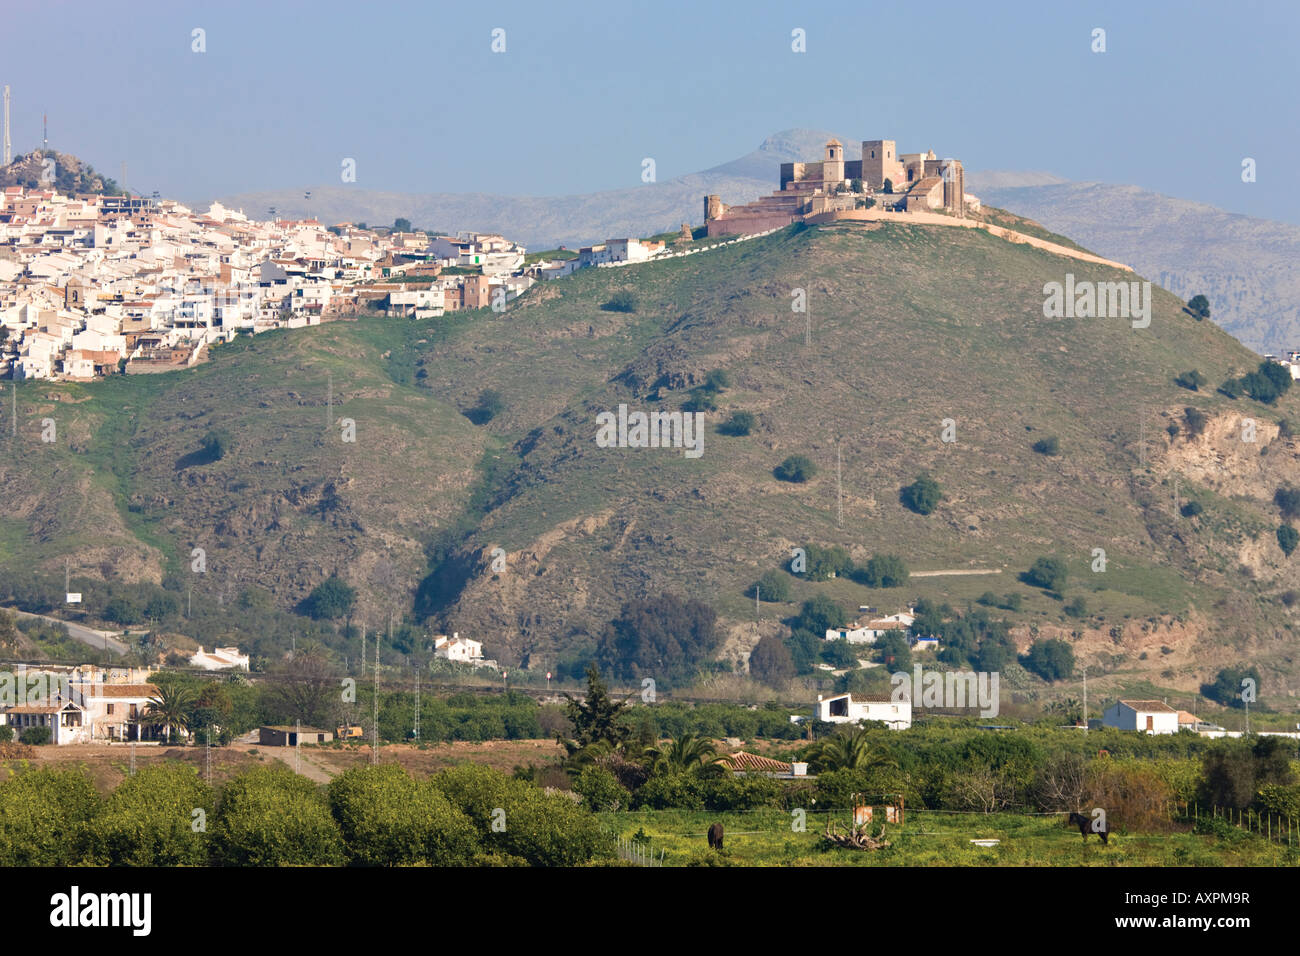 View across olive groves to Alora Inland Costa del Sol Malaga Province Spain Stock Photo